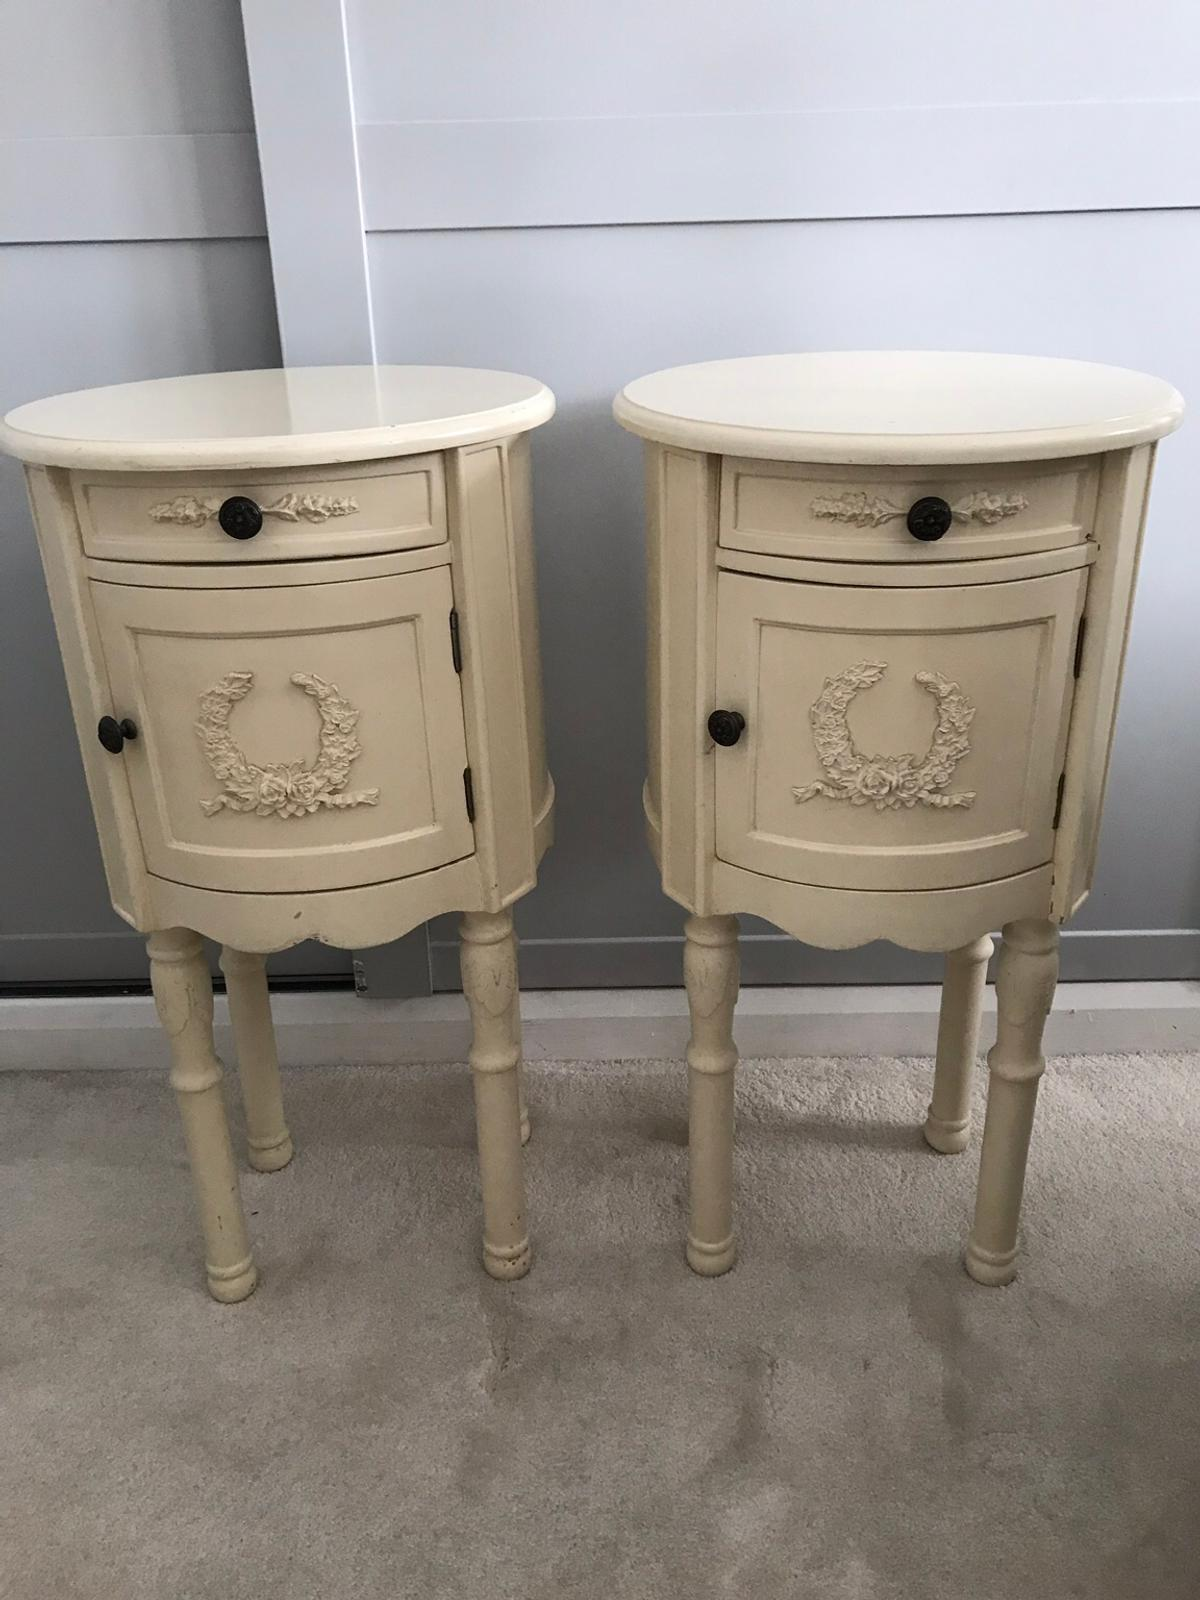 Picture of: Pair Of Cream Shabby Chic Bedside Tables In Rm11 Havering For 50 00 For Sale Shpock